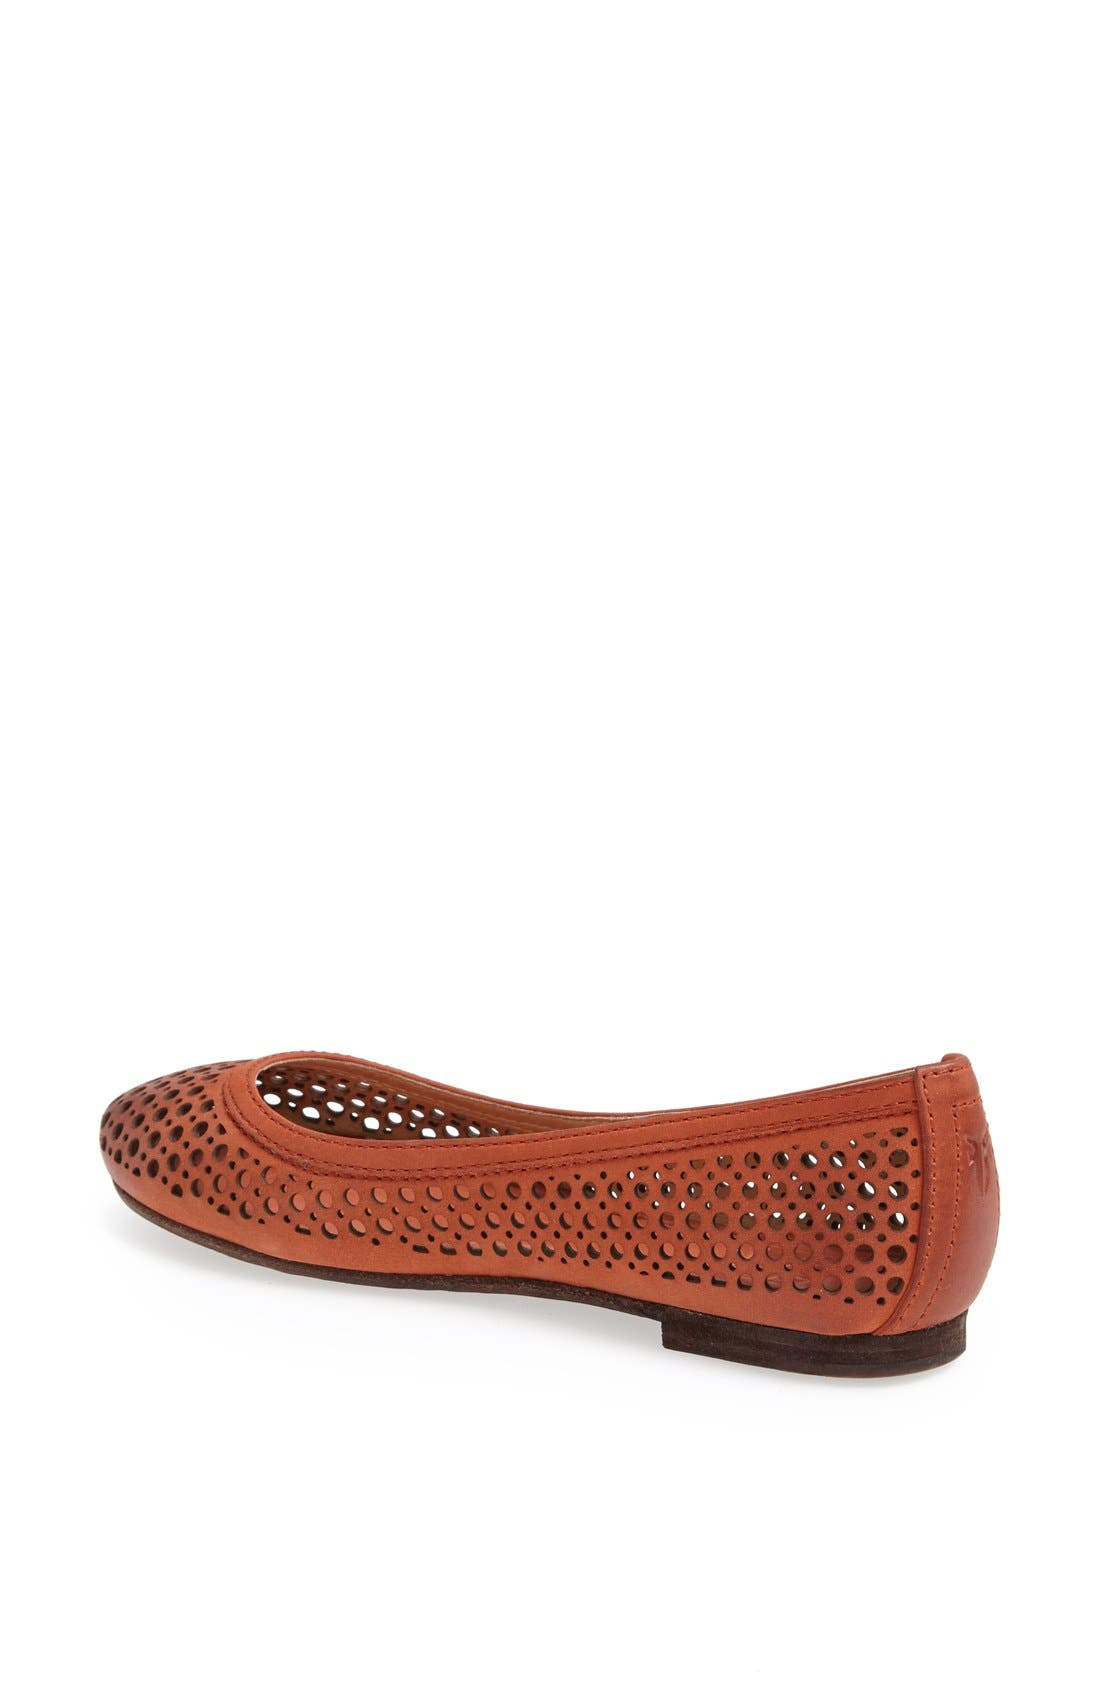 Alternate Image 2  - Frye 'Carson' Perforated Leather Ballet Flat